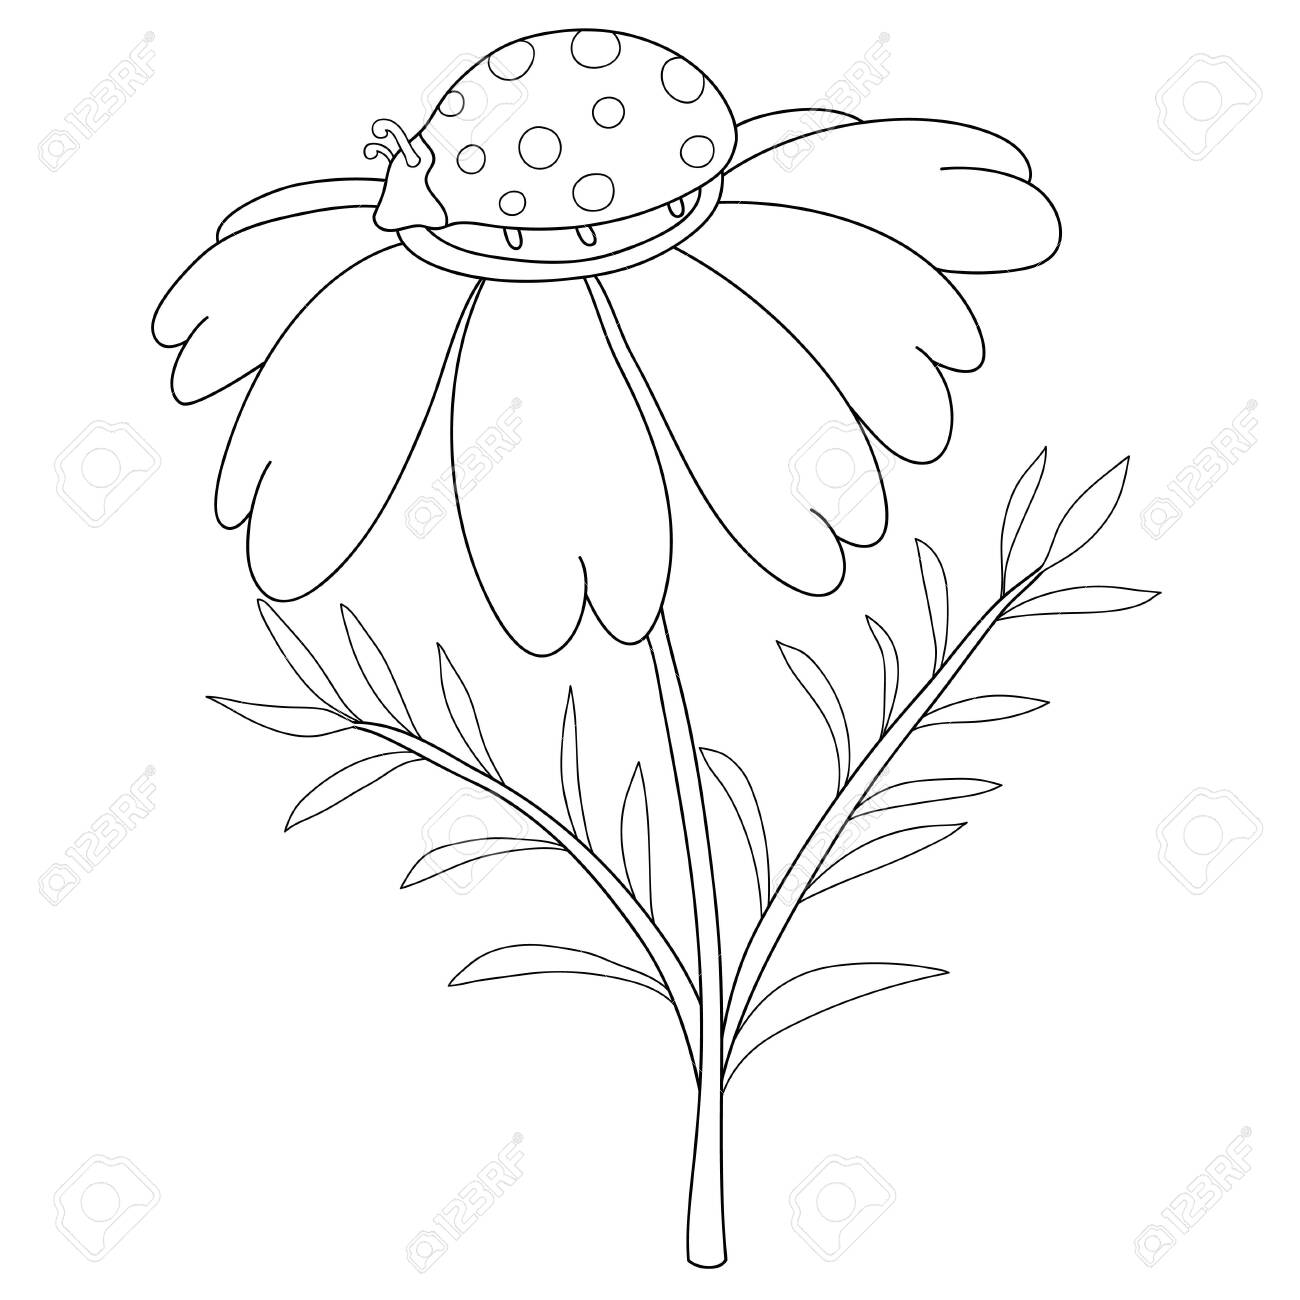 A cute ladybird on the camomile image for relaxing activity.A coloring book,page for children,black and white image. - 148720874